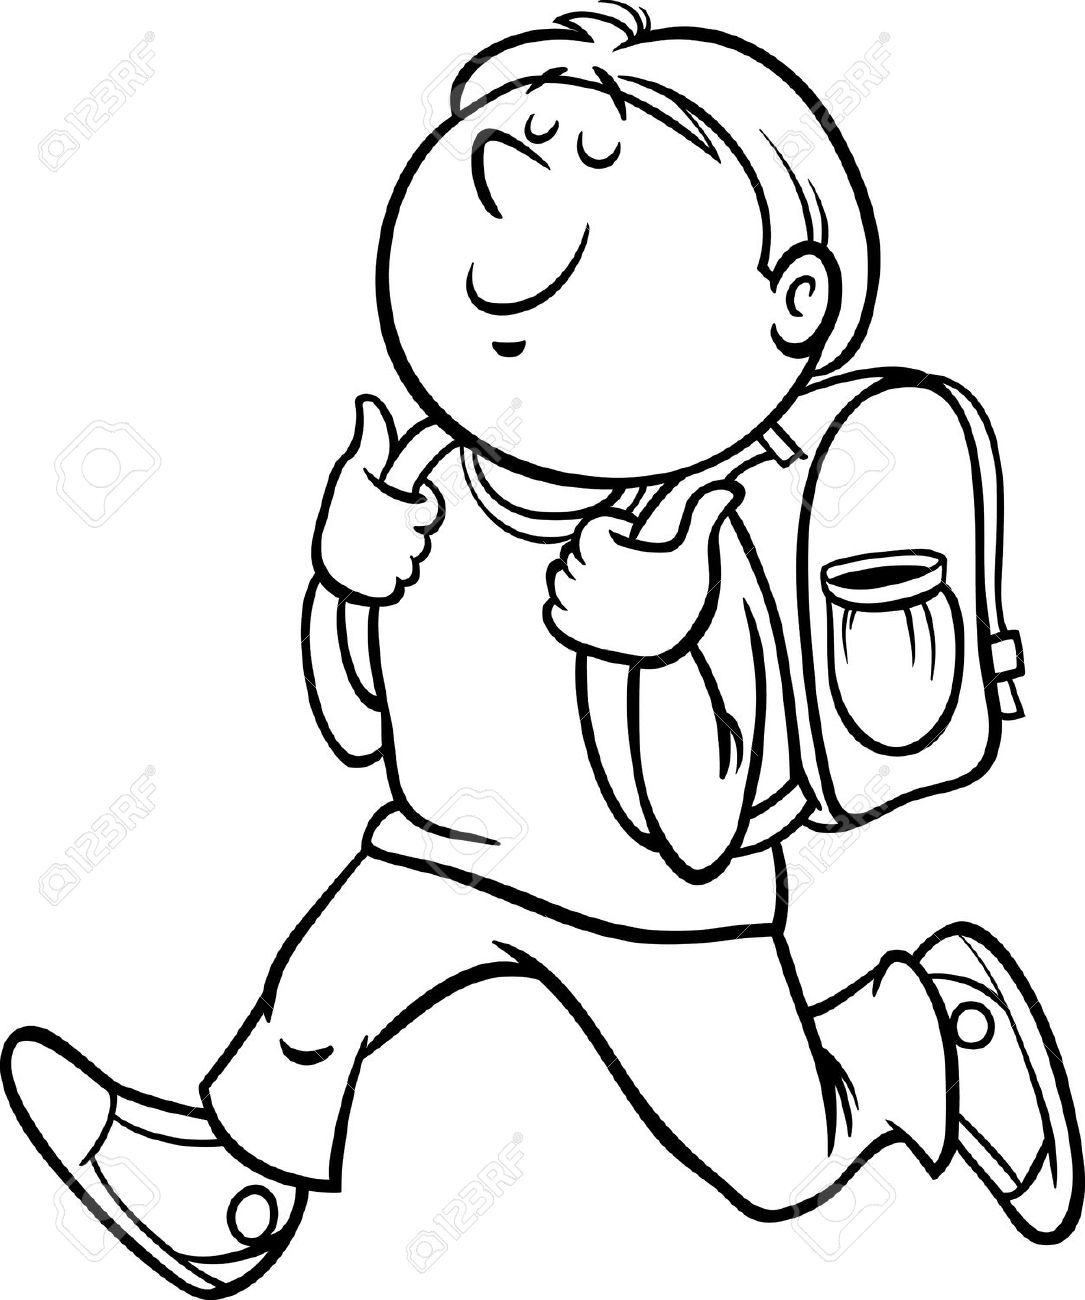 Boy turning in assignment to teacher clipart black and white banner freeuse download Boy turning in assignment to teacher clipart - ClipartFox banner freeuse download